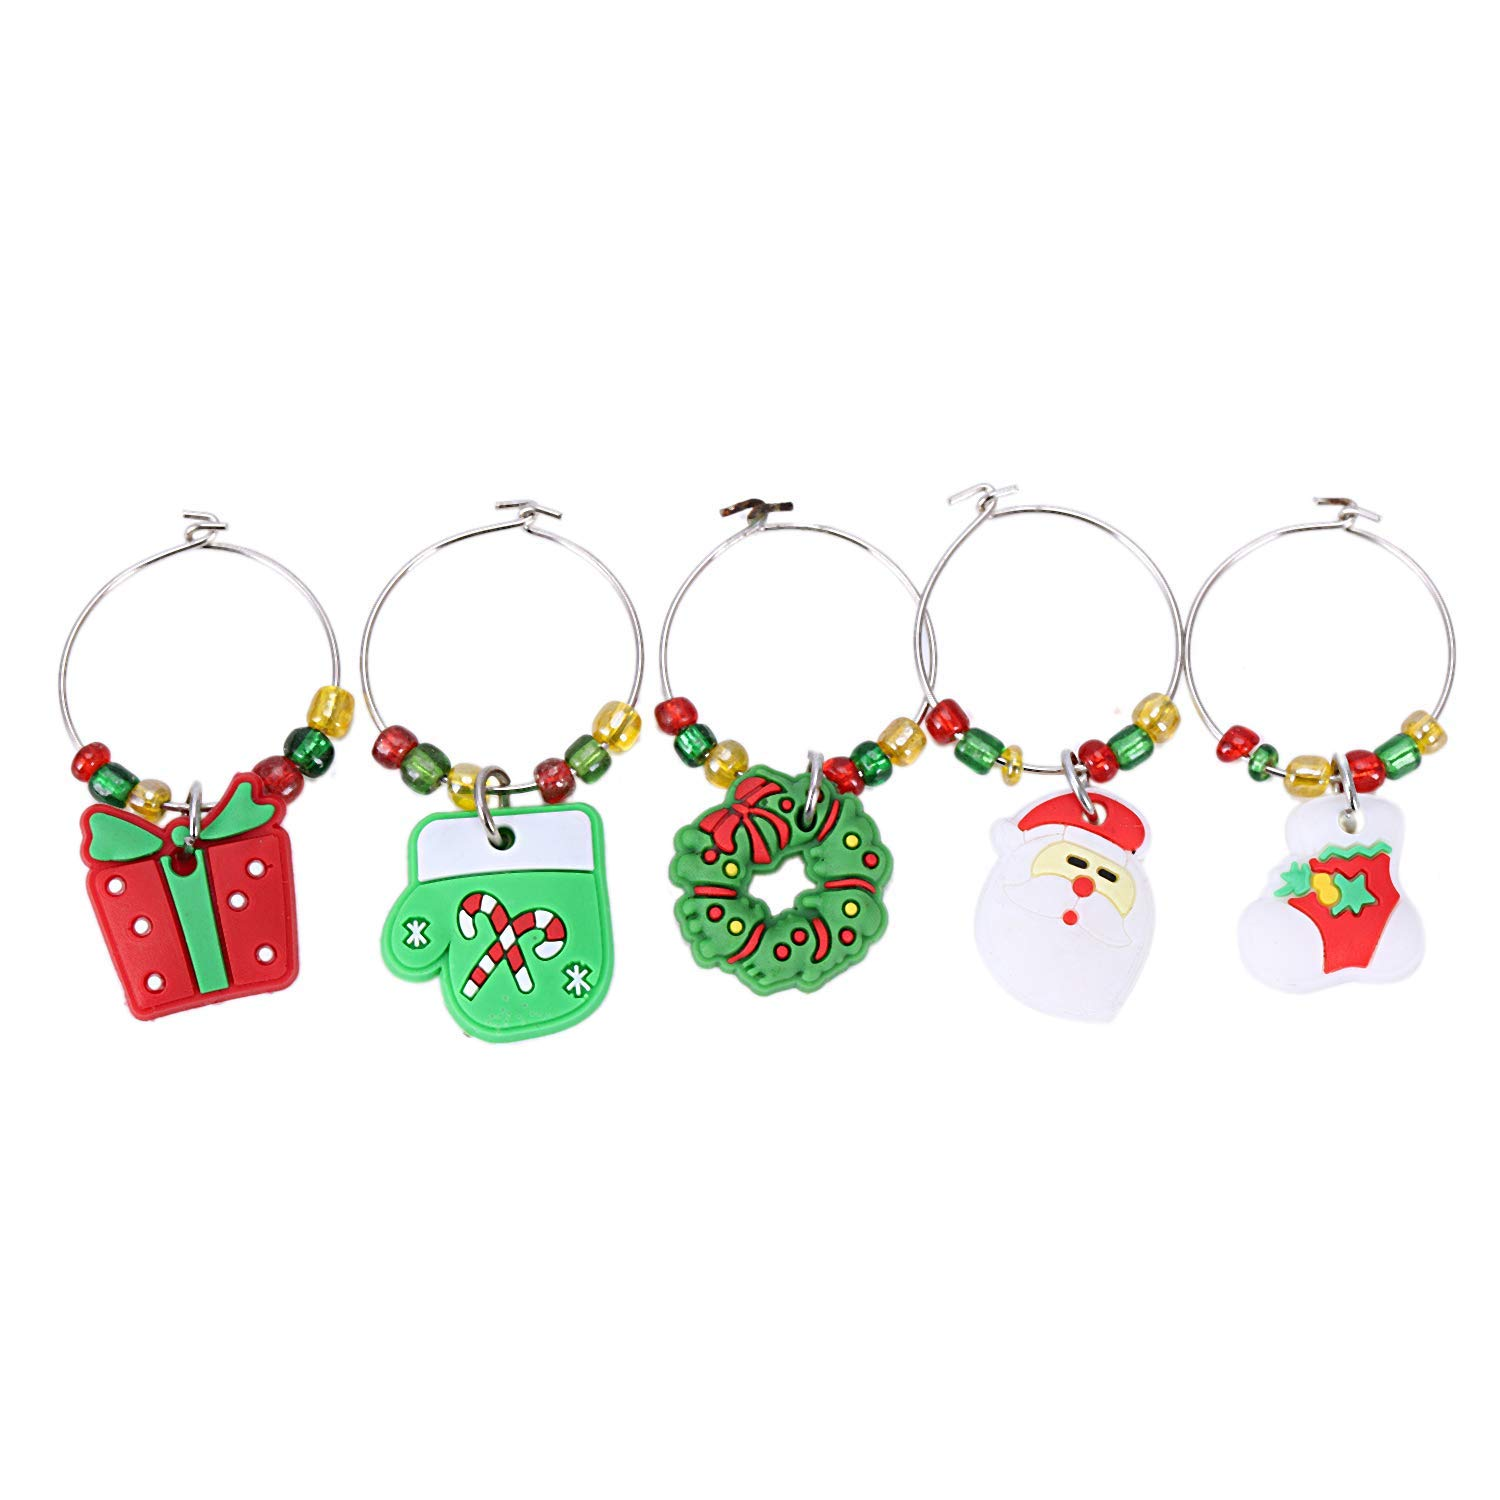 Yevison 6PCS PVC Merry Christmas Wine Glass Charms Rings Marker Christmas Party Bar Table Decorations Durable and Useful by Yevison